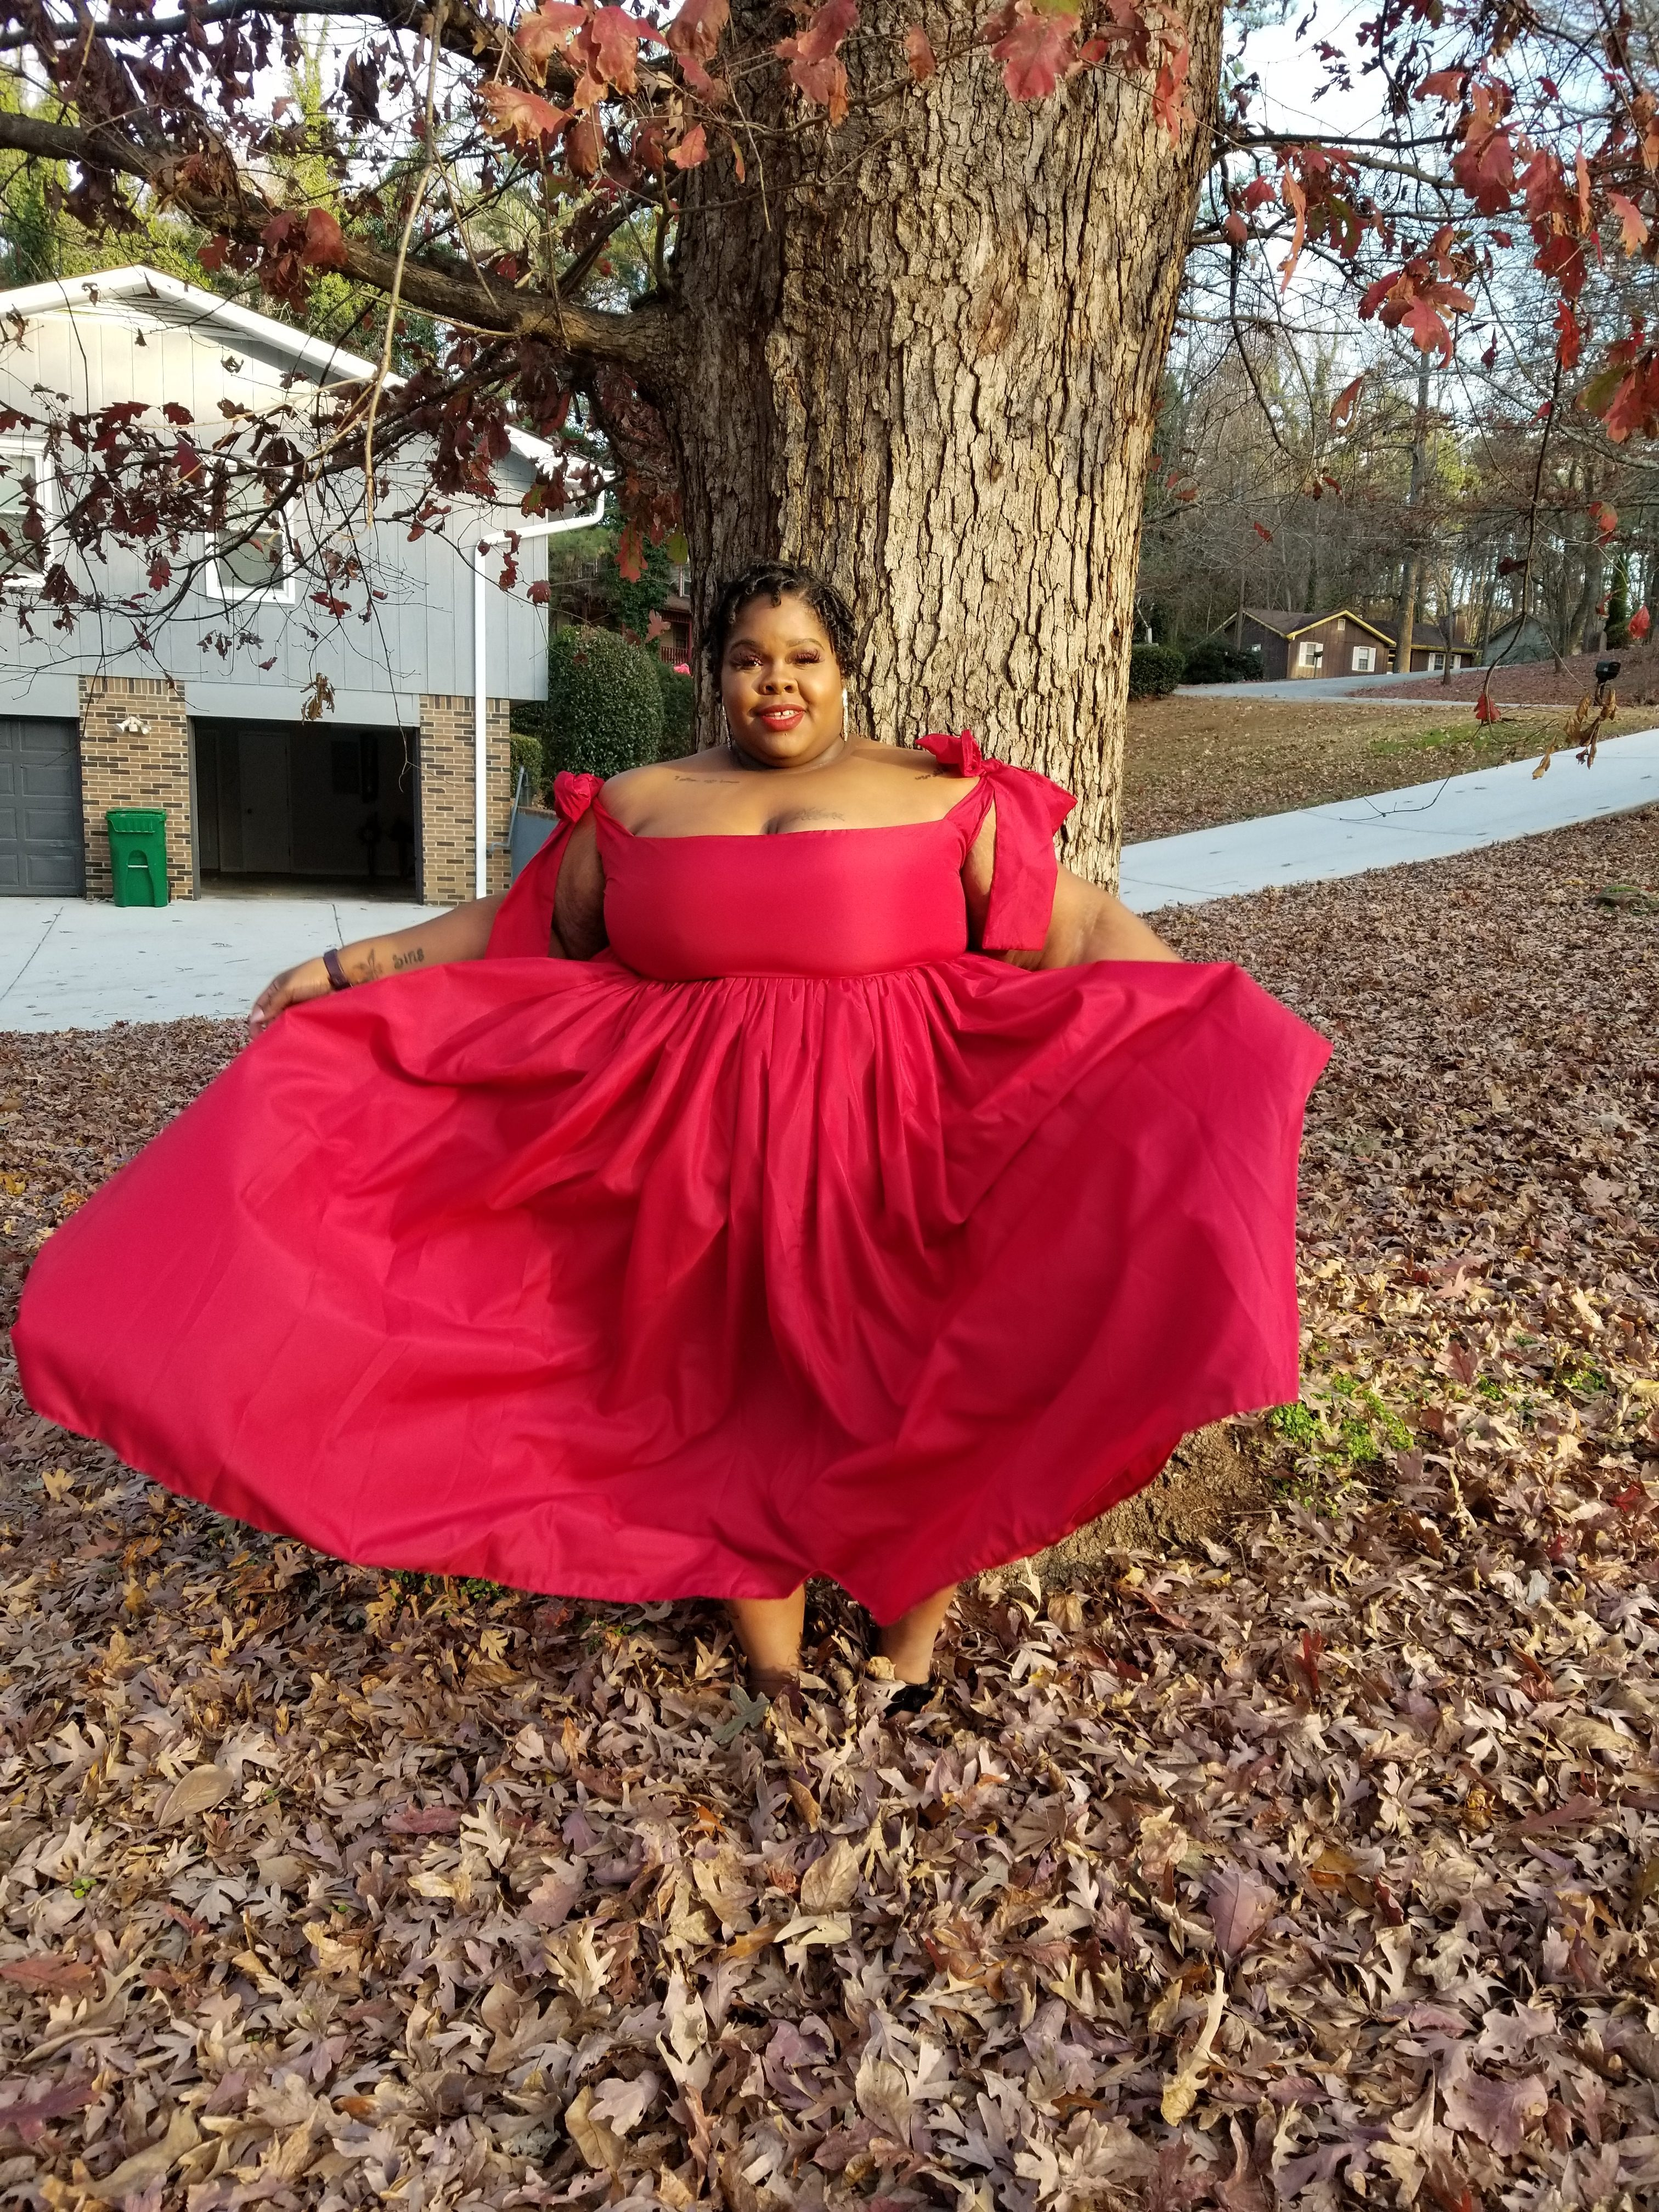 AP smiling standing in front of a tree in a red gown billowing up looking towards the camera. Leaves are covering the ground.